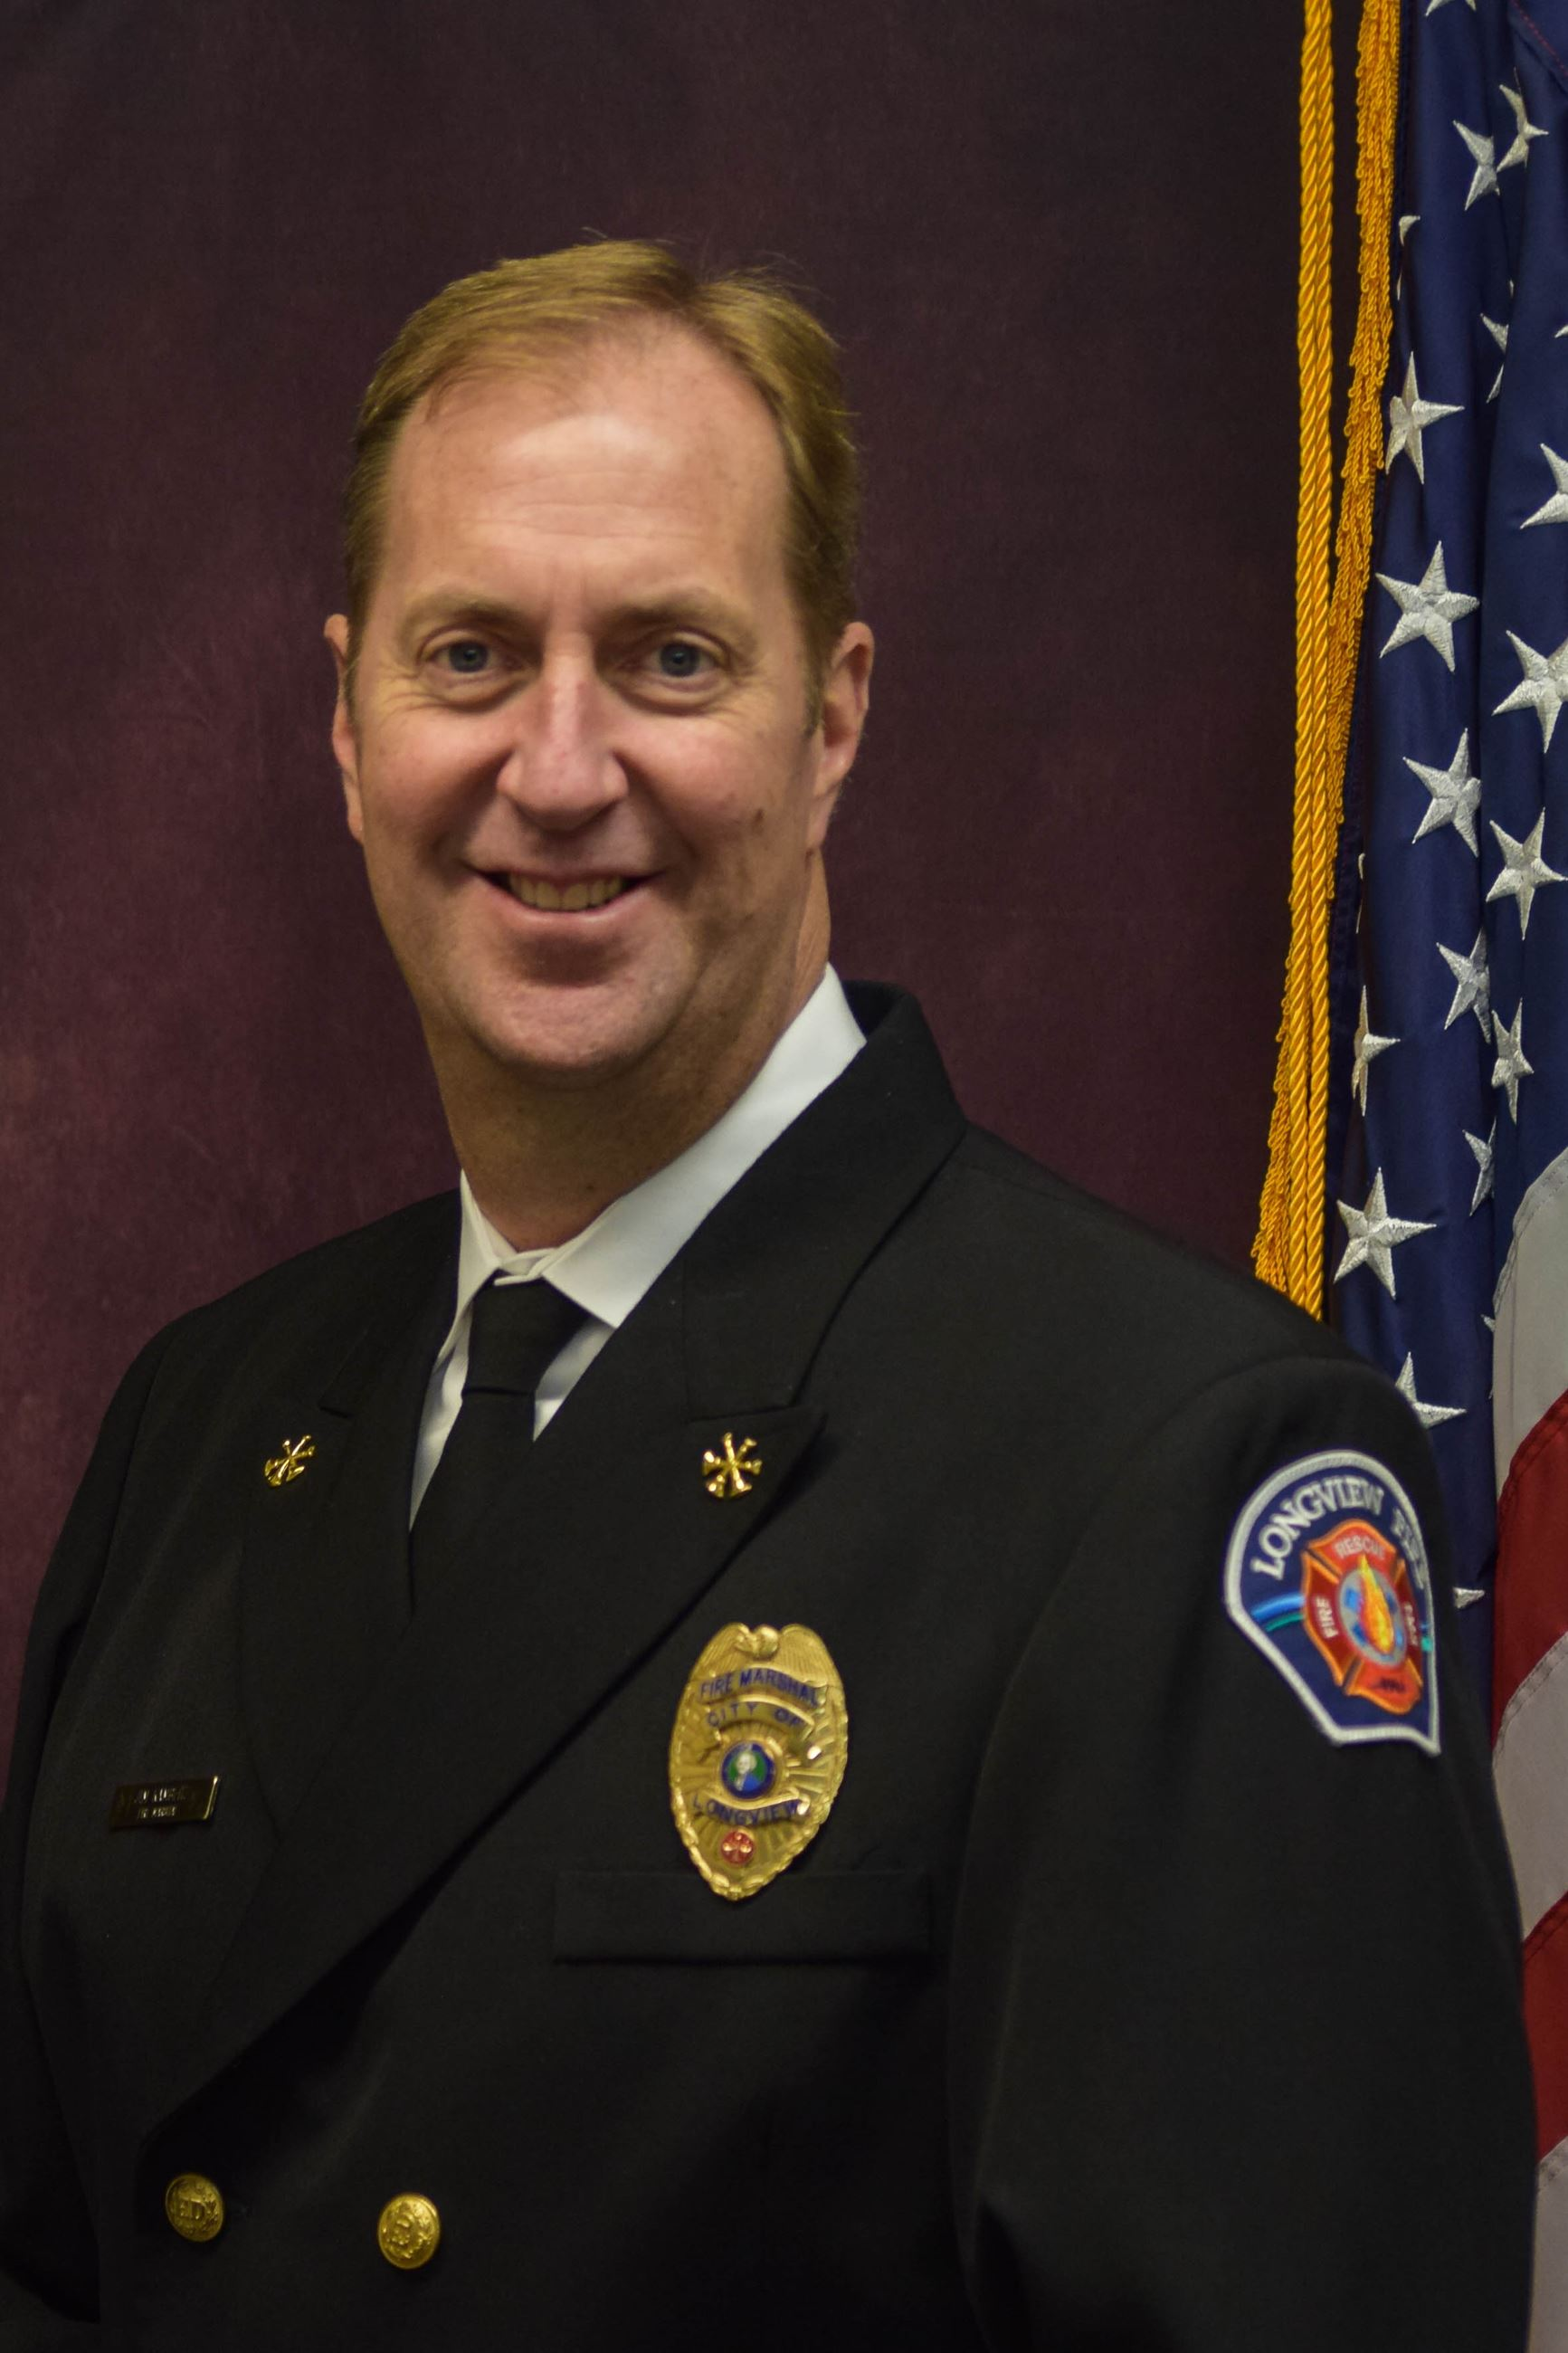 Interim Fire Chief Jim Kambeitz